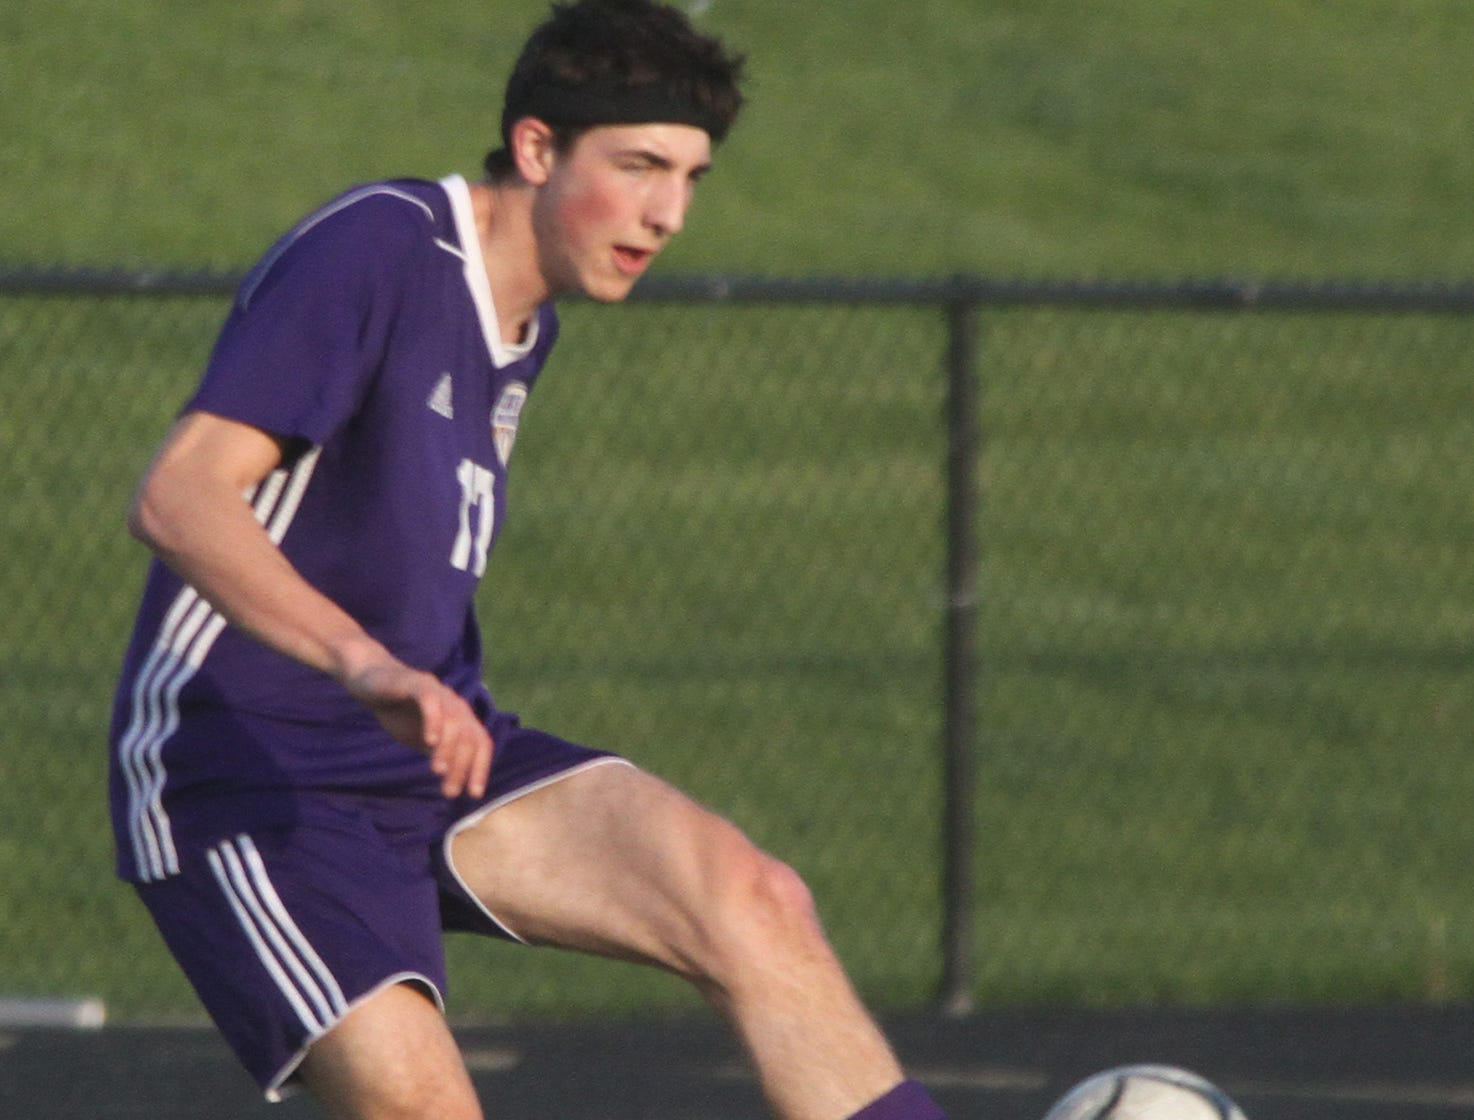 Indianola senior Connor Lynch handles the ball. Indianola beat Newton 2-0 at home in a Little Hawkeye Conference game.